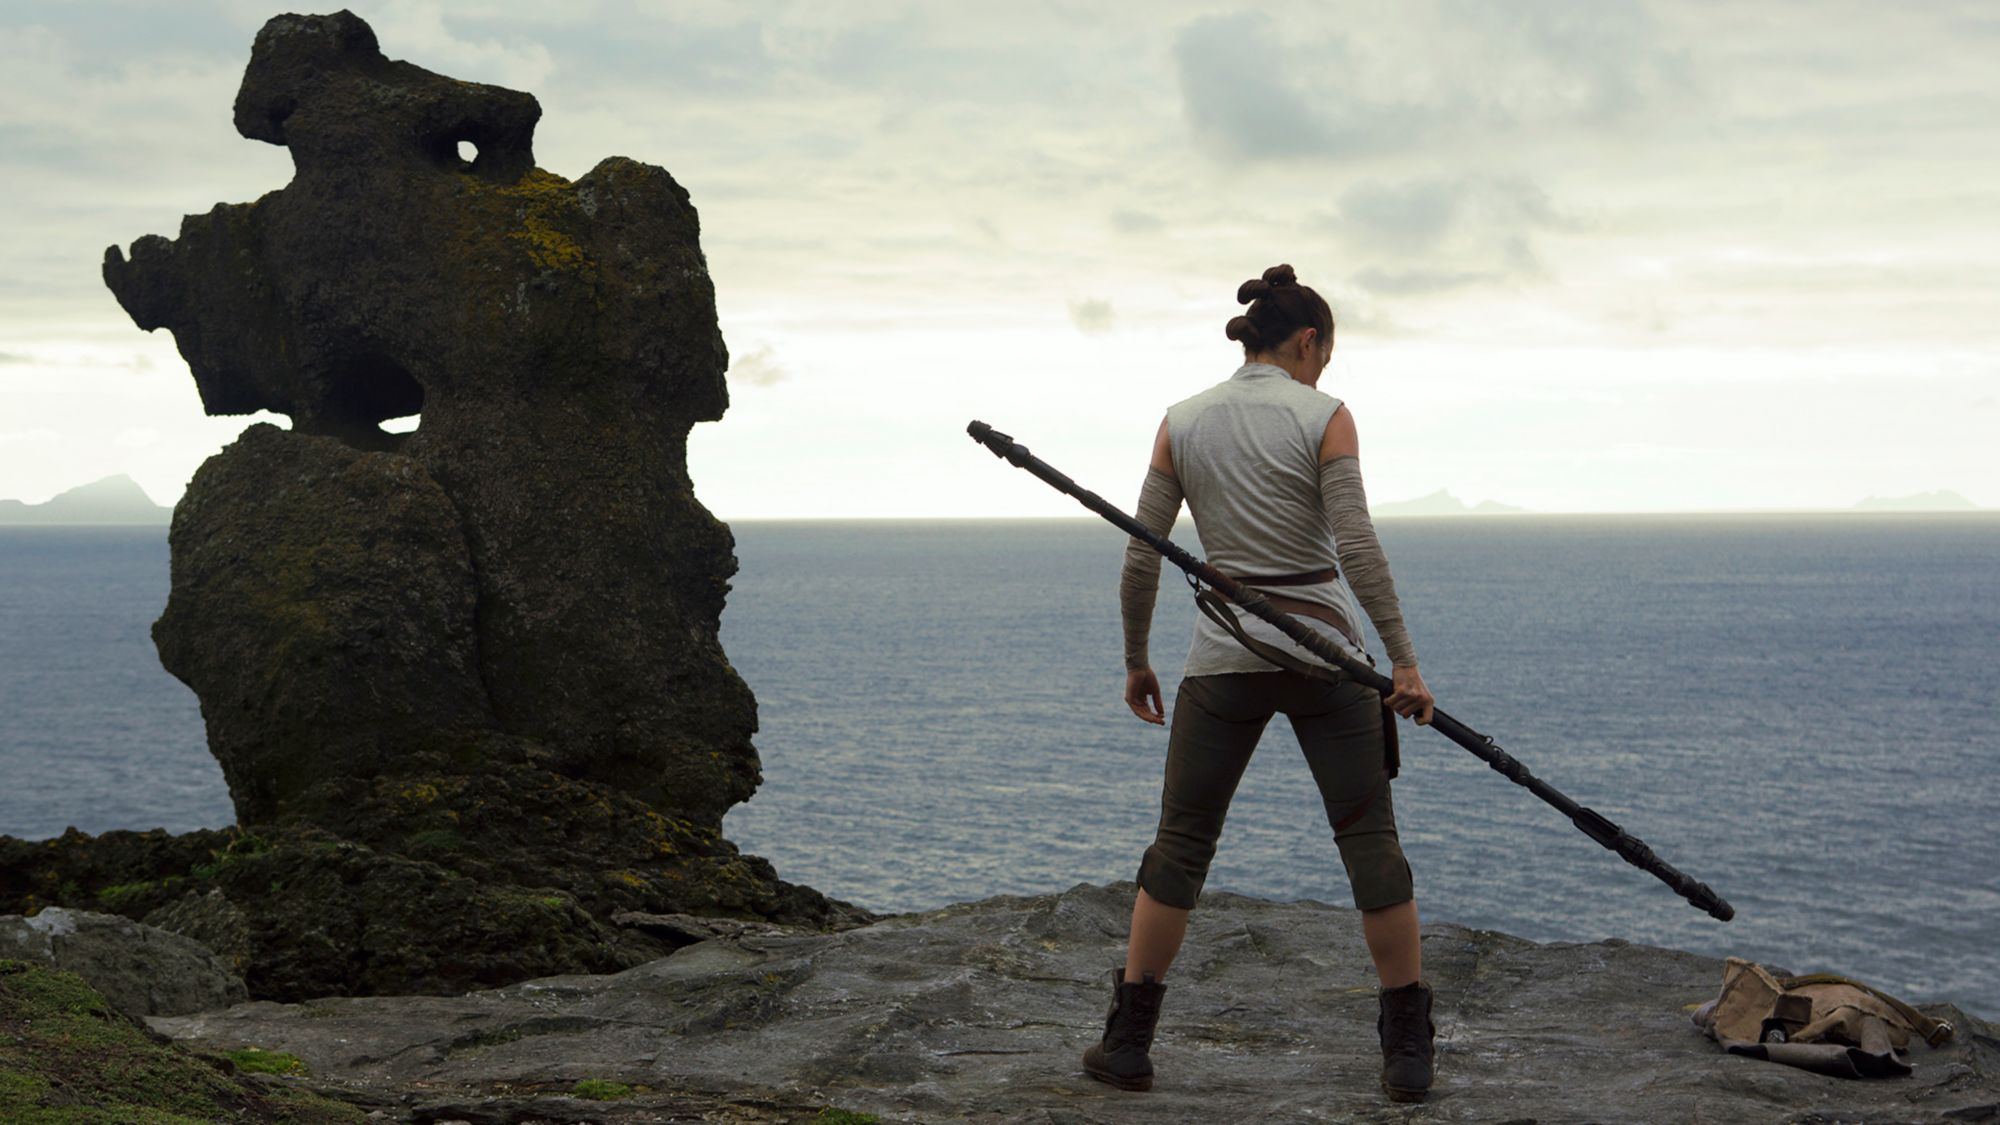 Star Wars The Last Jedi hub: Ray in the cliff